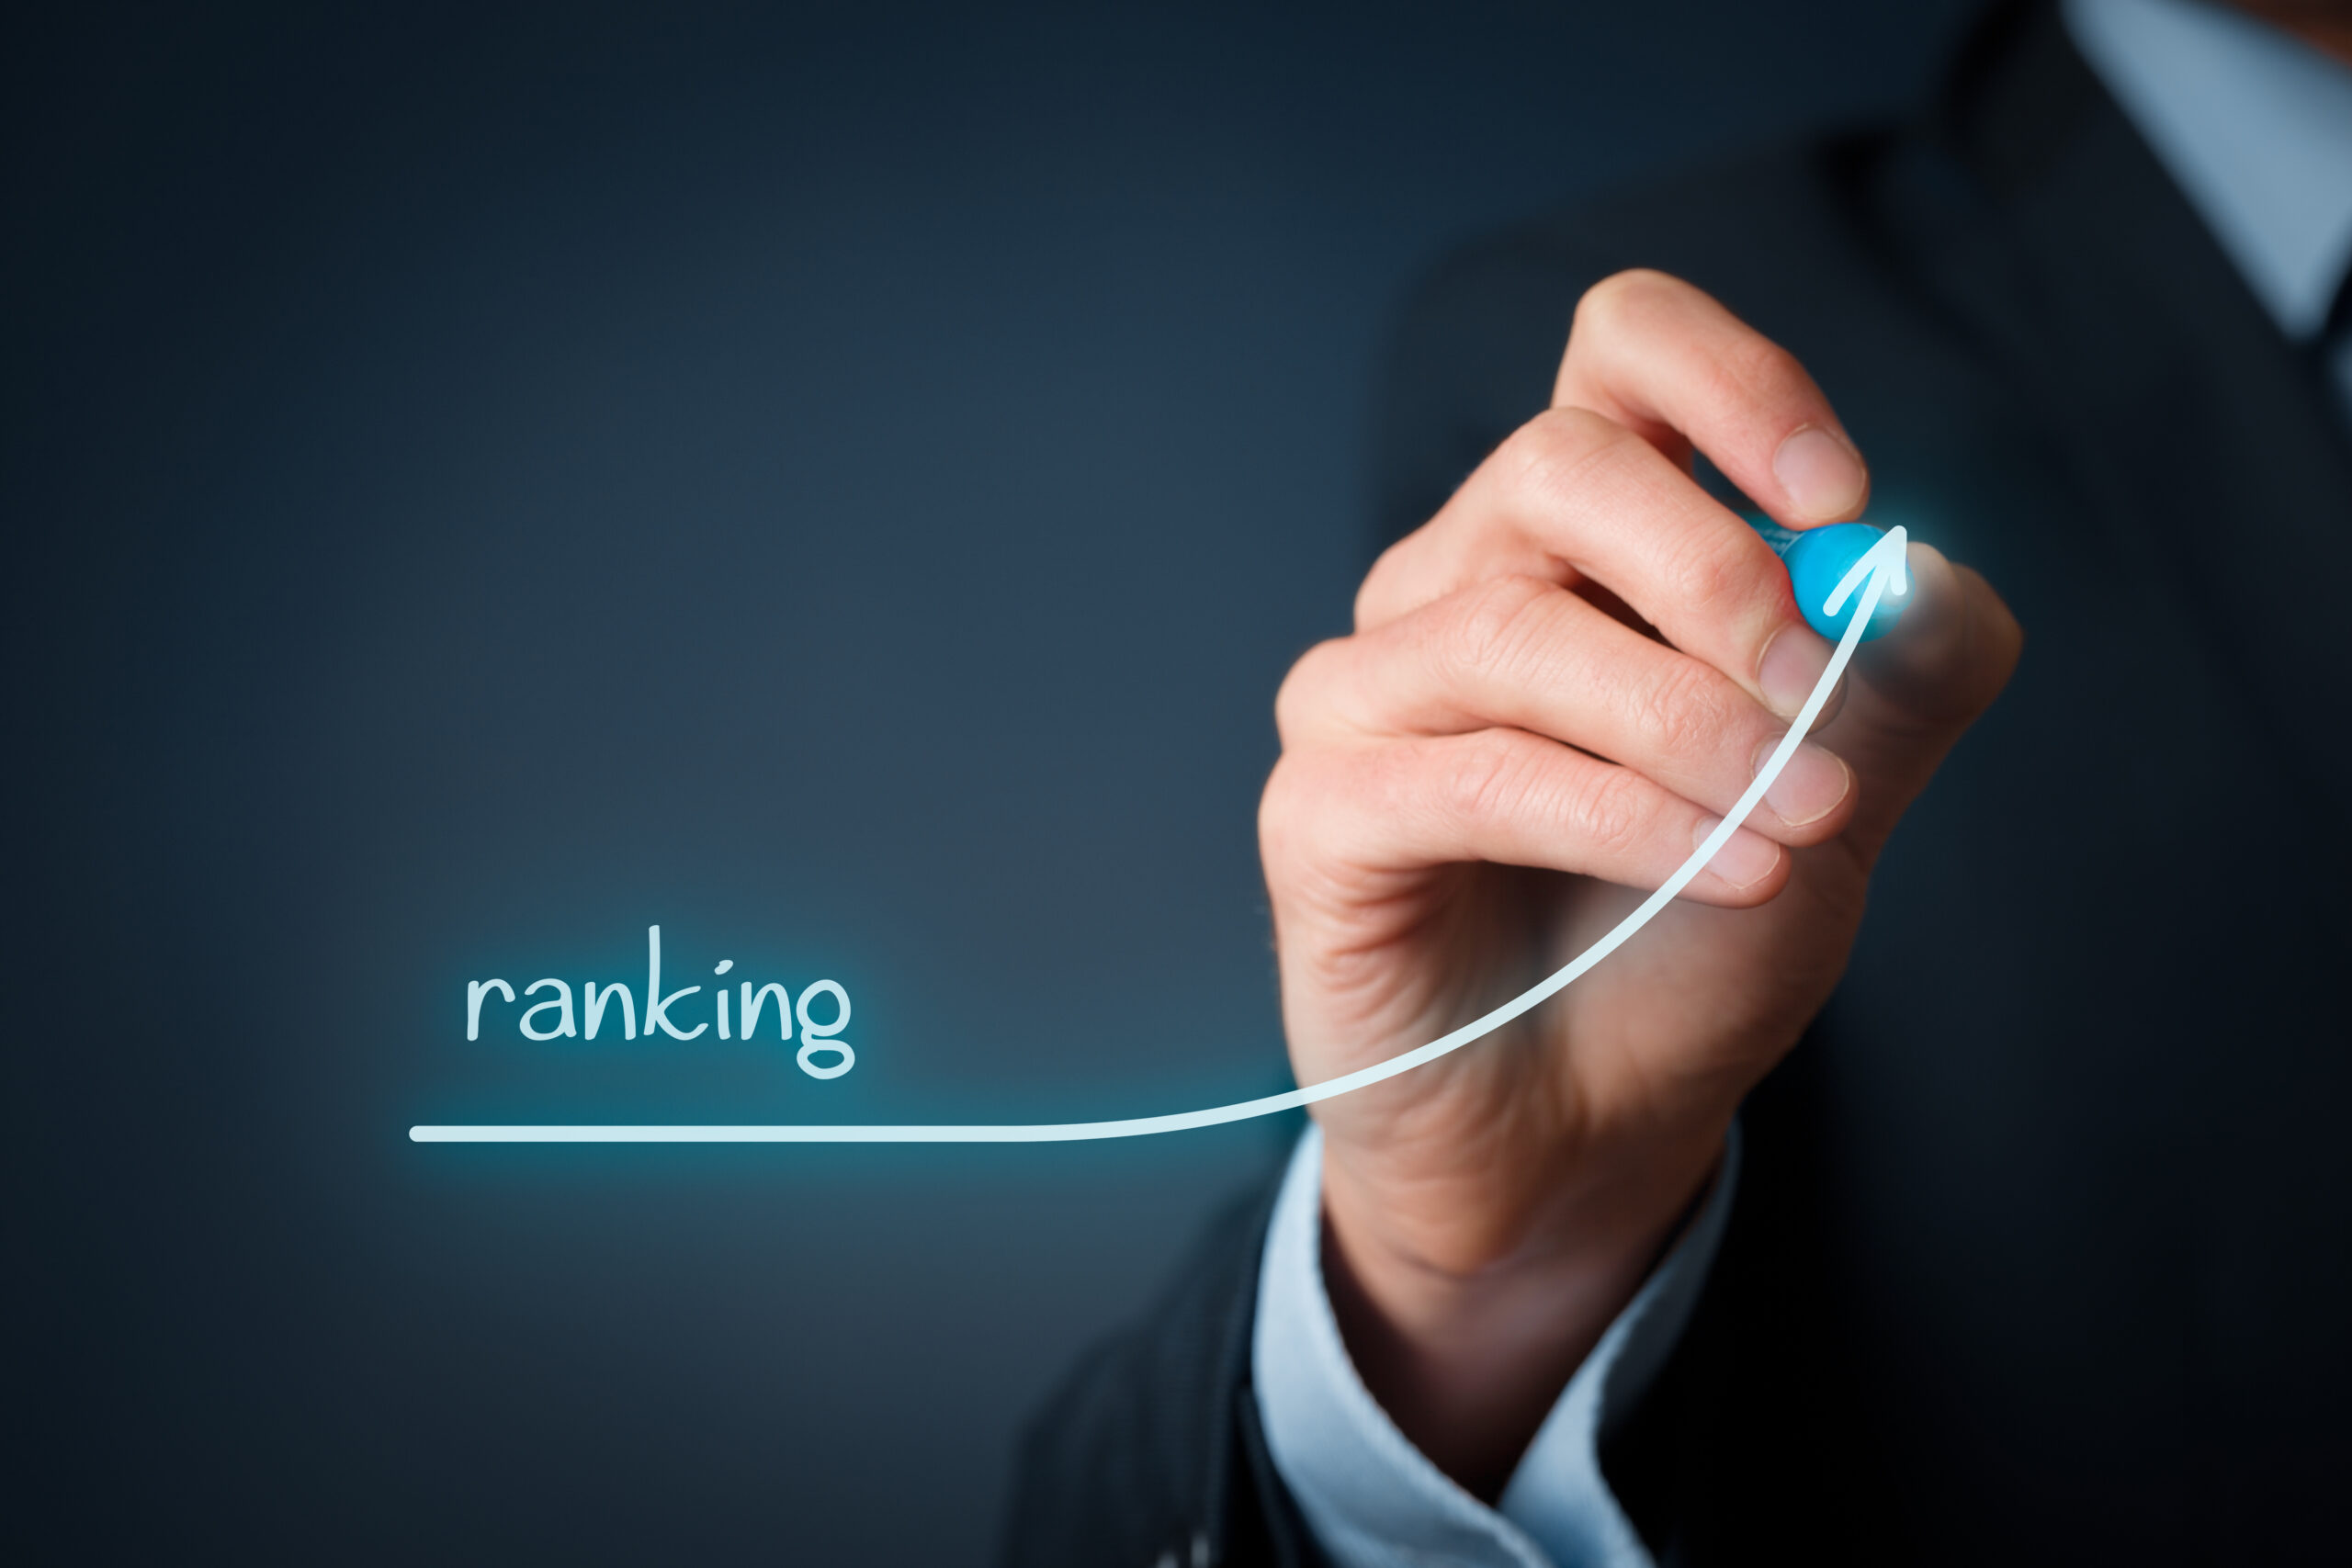 citations_for_ranking